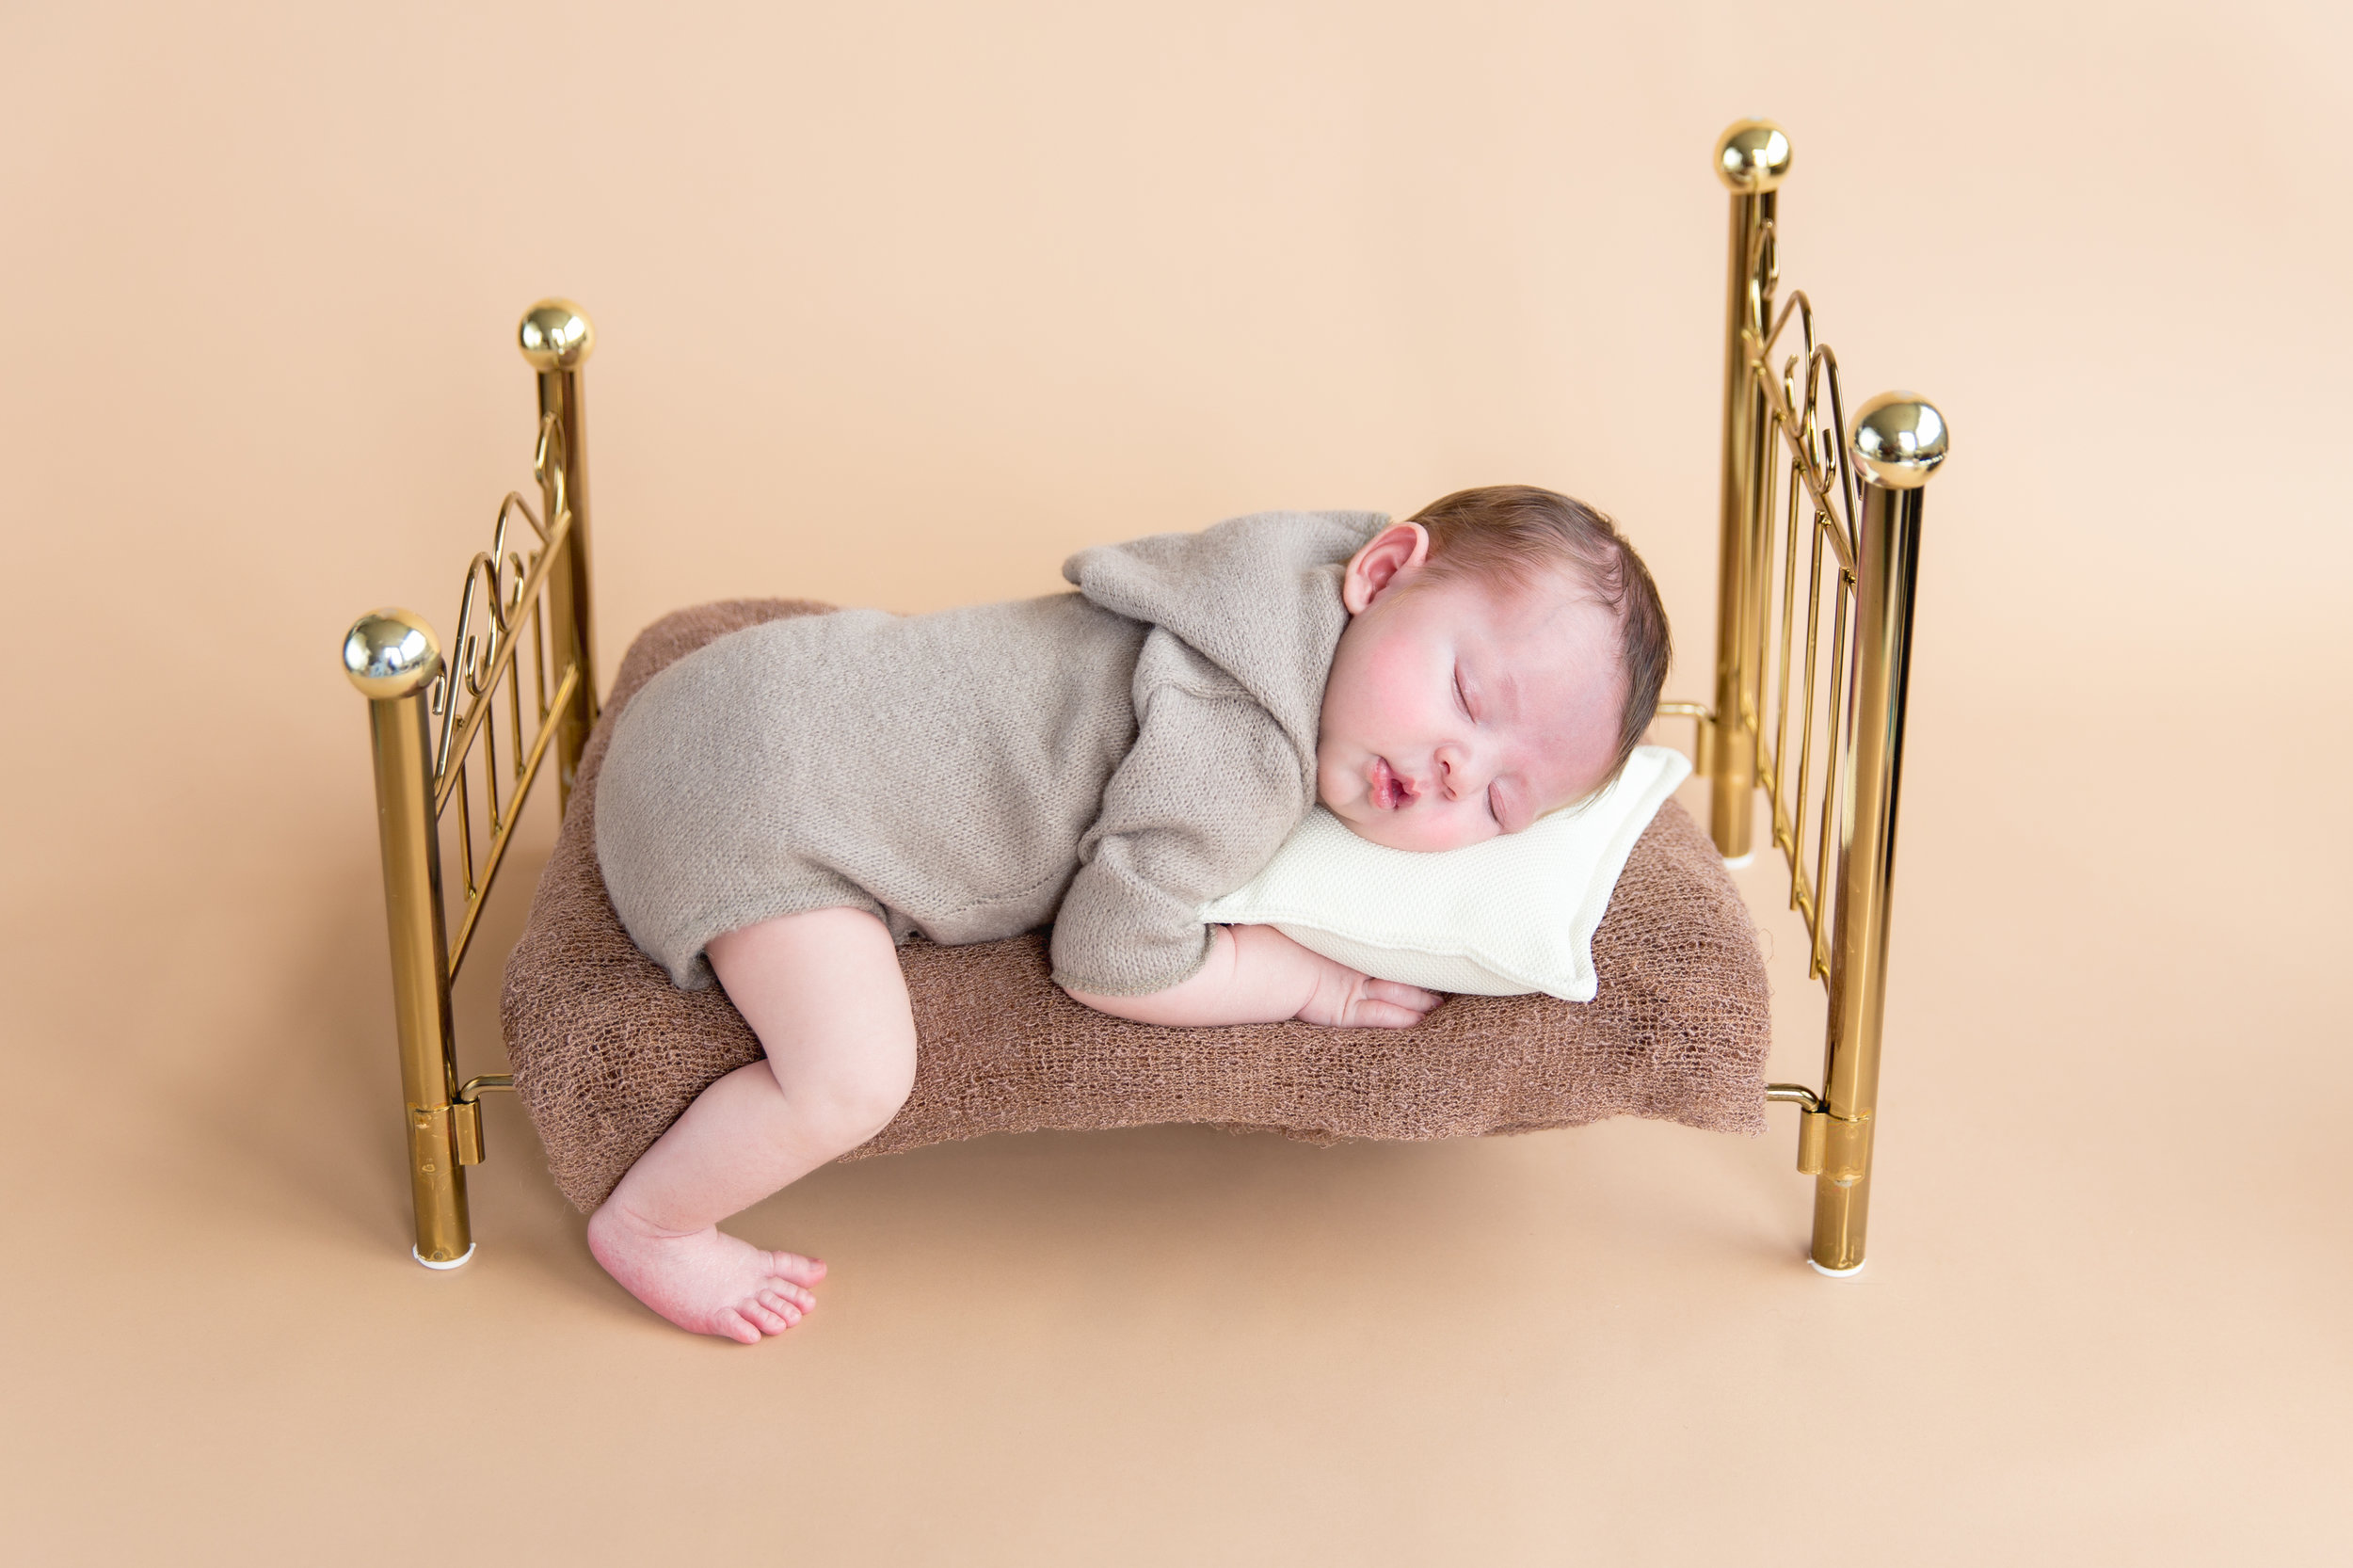 Newborn baby boy lying on a gold little antique bed. Calgary Newborn Photographer. Milashka Photography